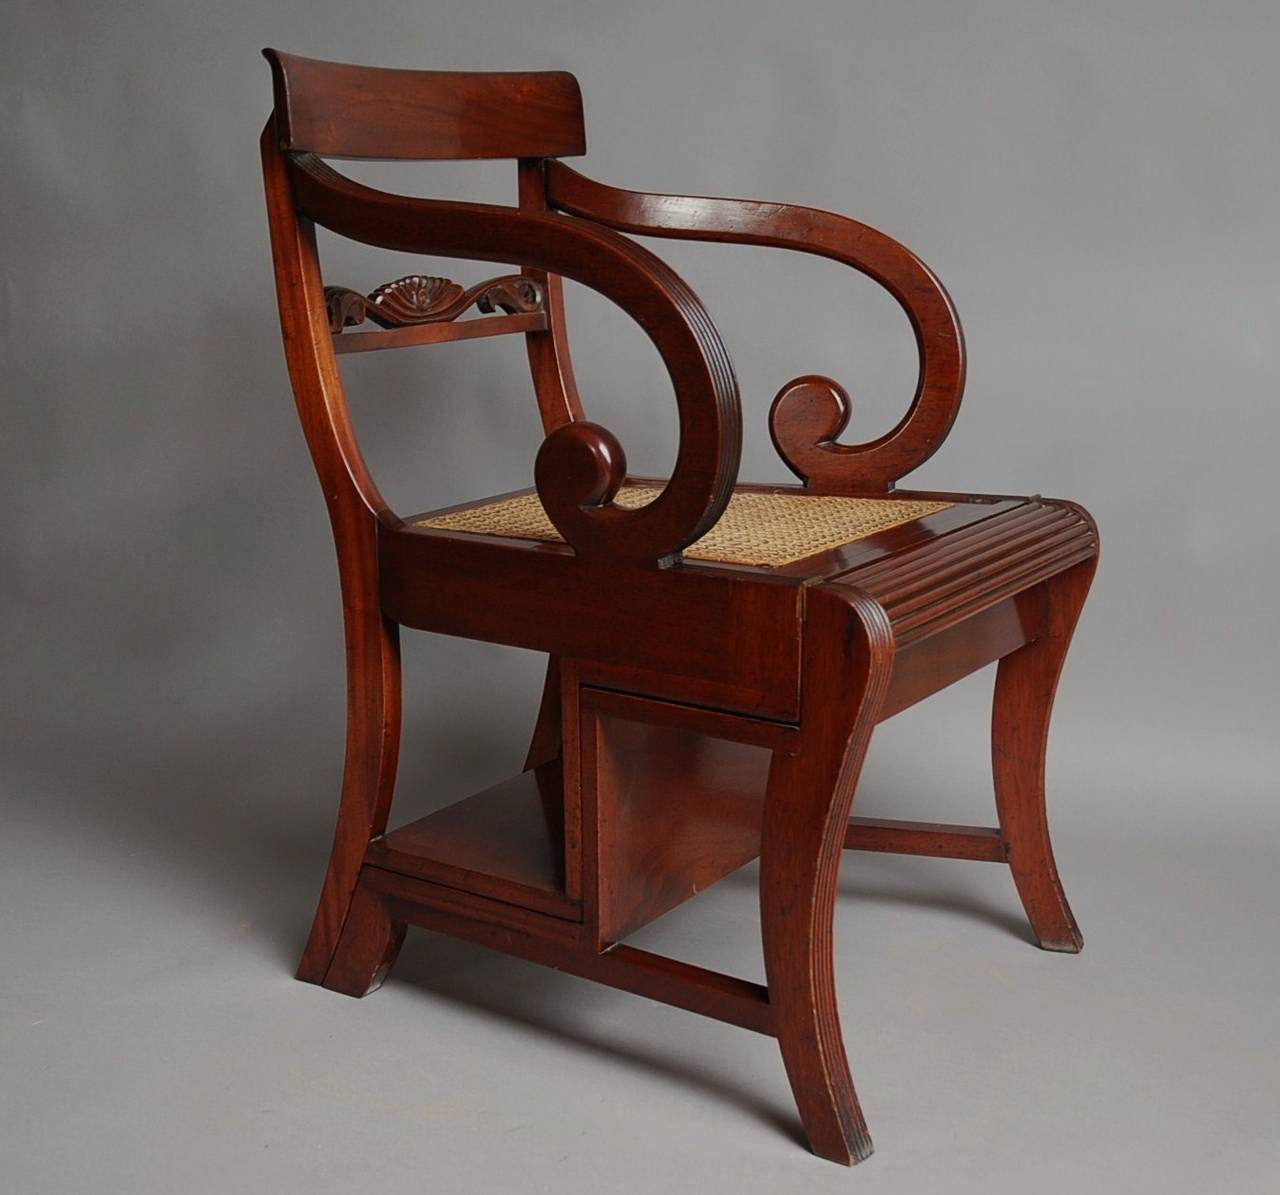 Regency Style Chairs ~ Regency style metamorphic chair for sale at stdibs